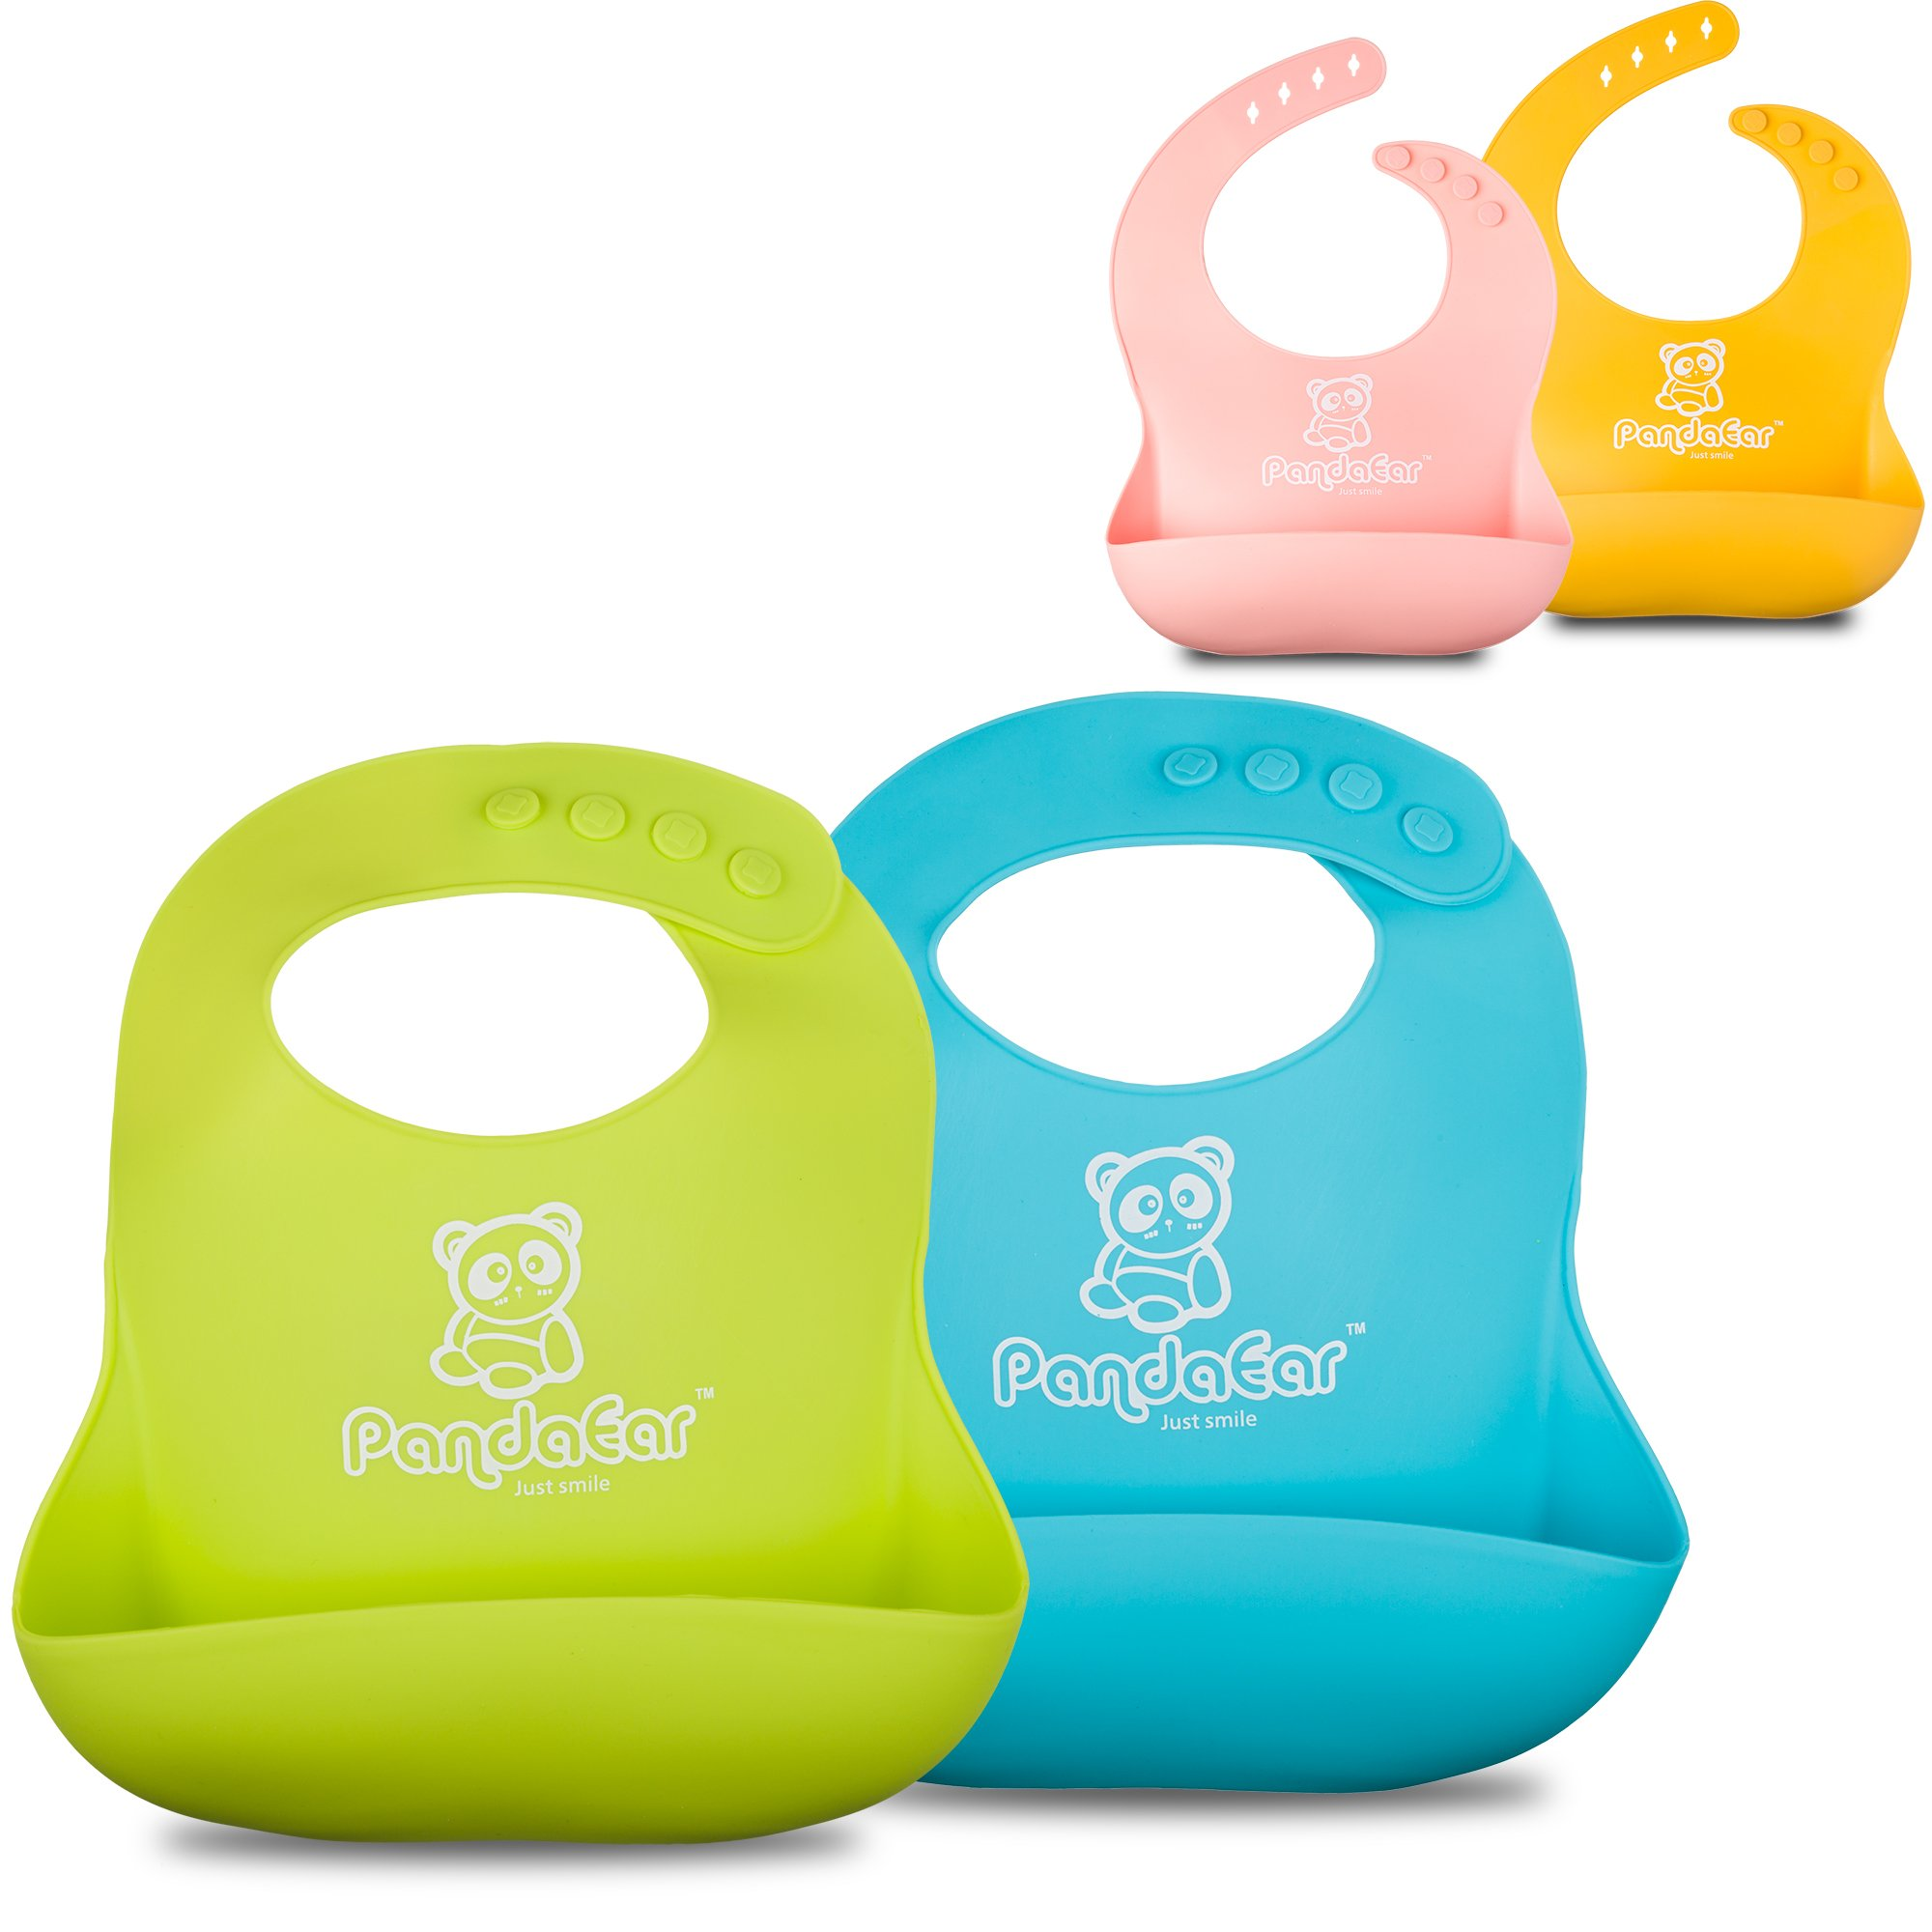 PandaEar Set of 2 Cute Silicone Baby Bibs for Babies & Toddlers (10-72 Months) Waterproof, Soft, Unisex, Non Messy - Turquoise/Lime Green